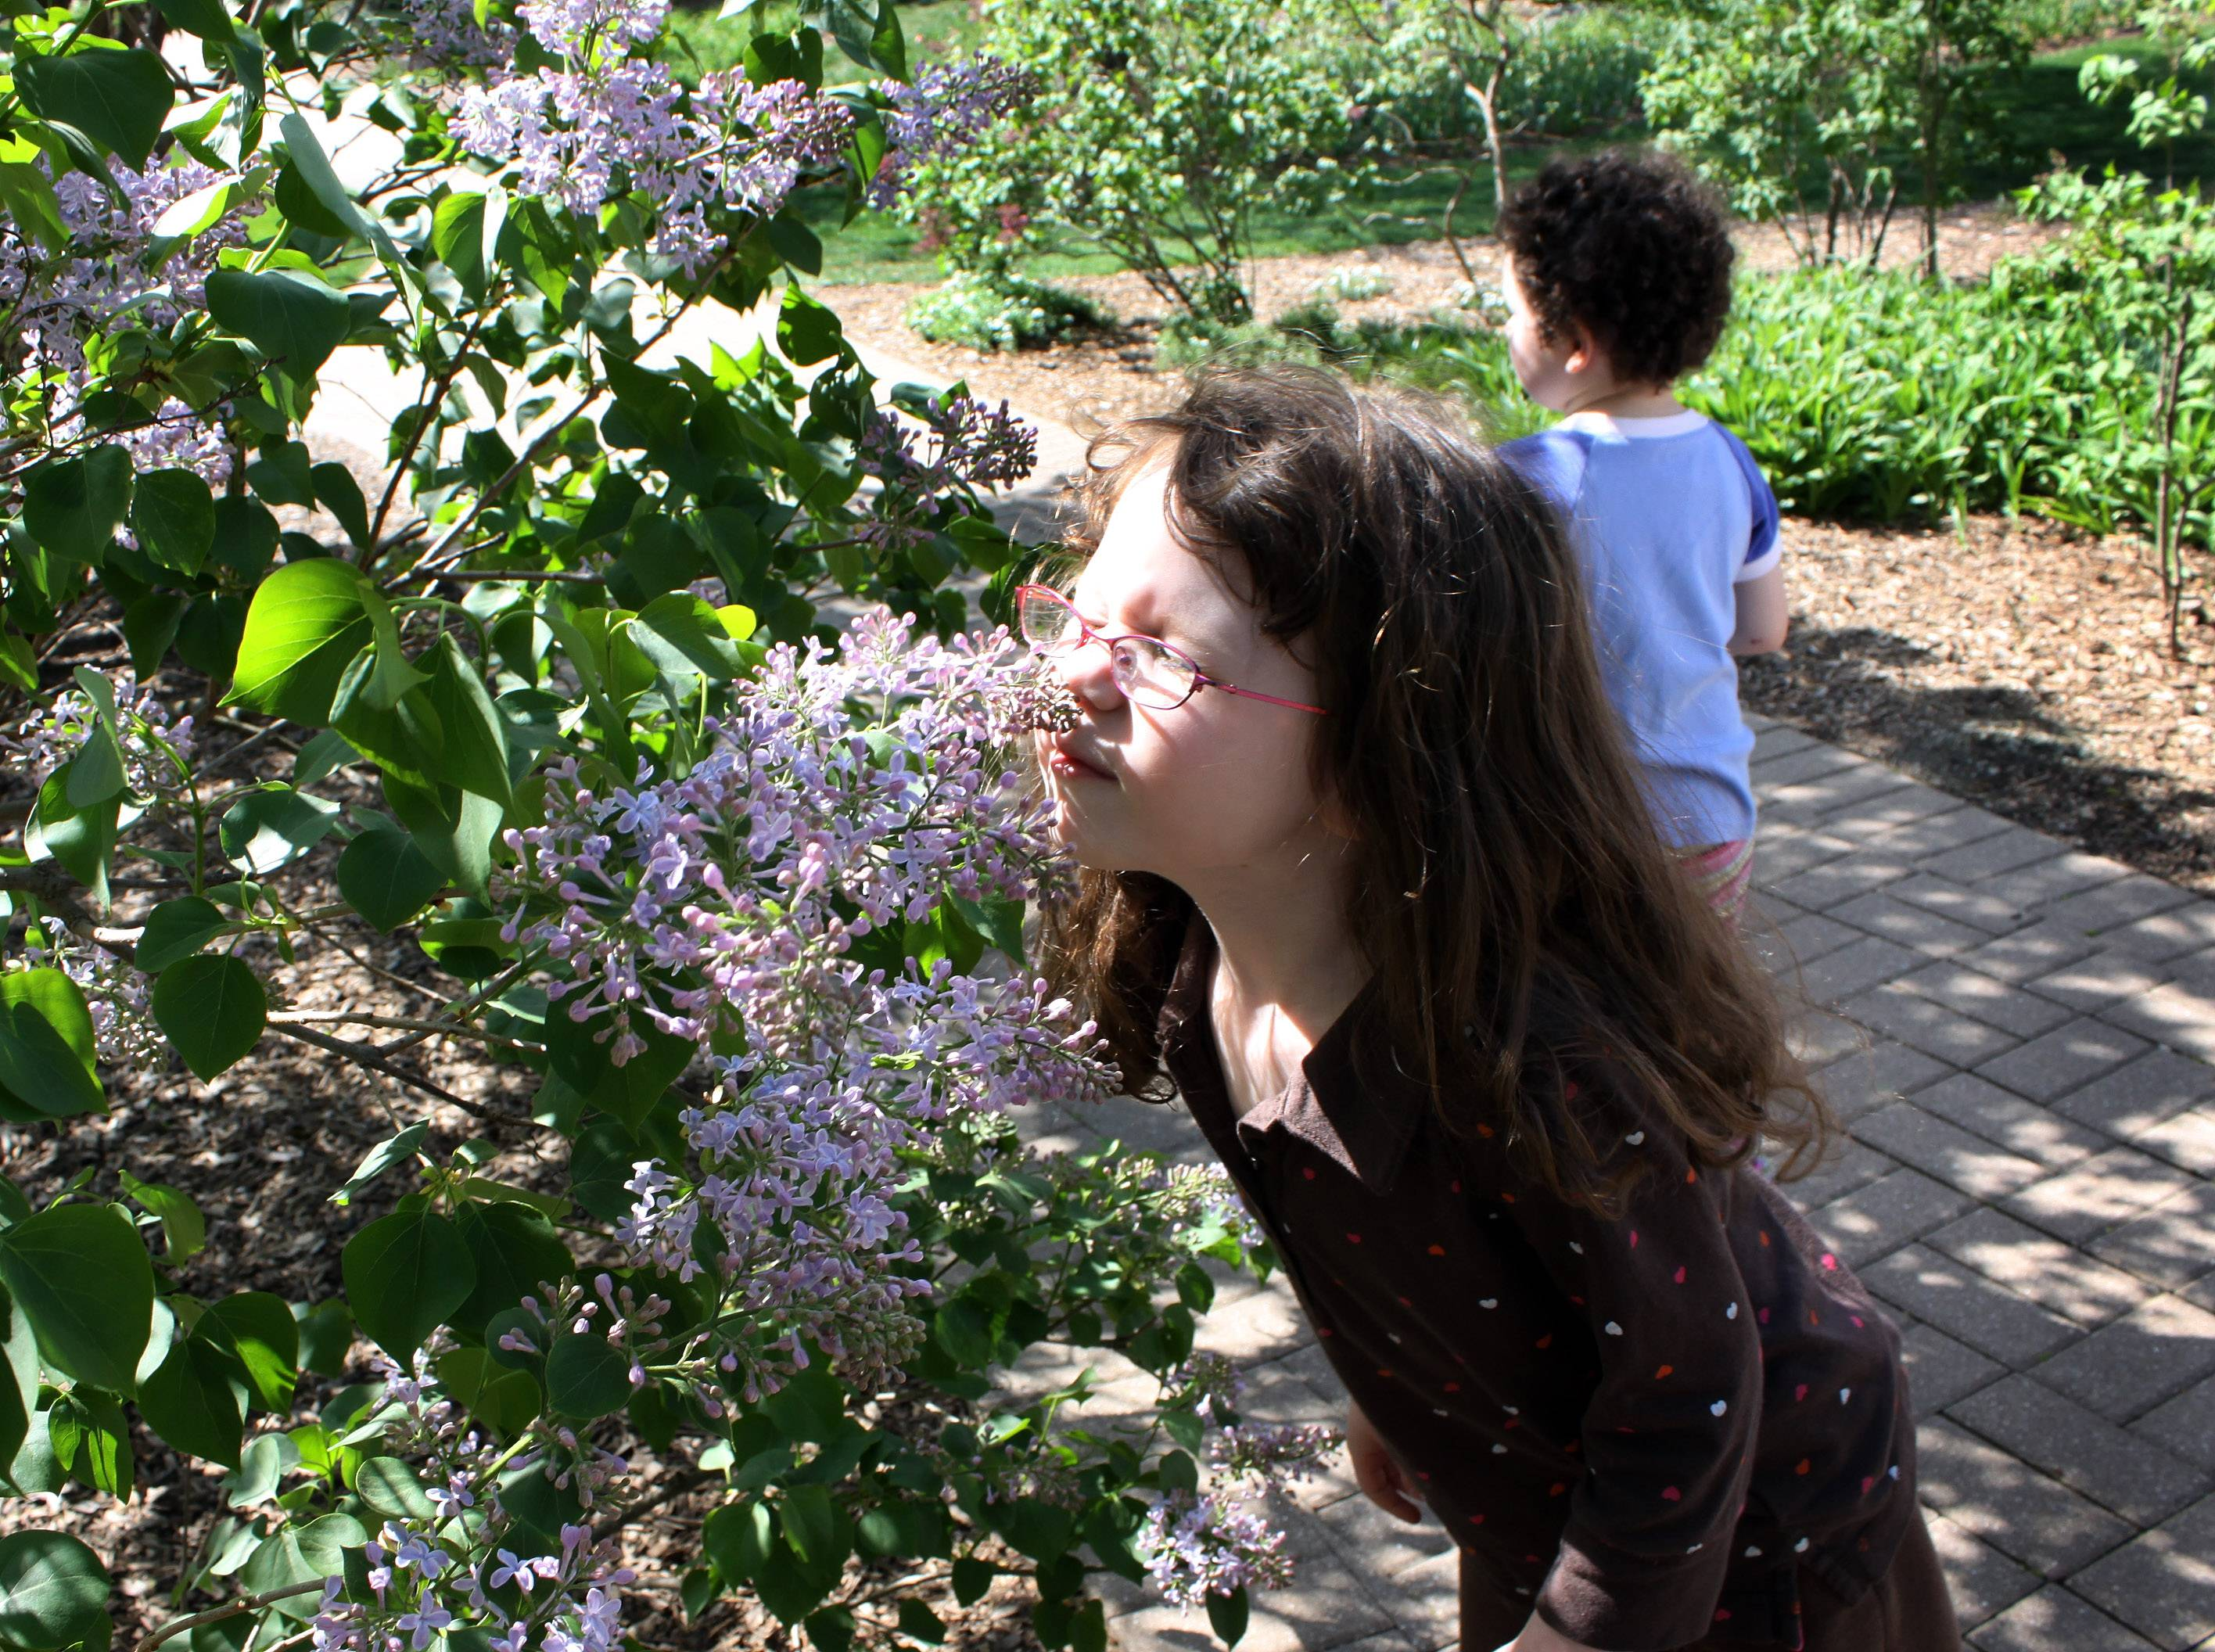 Lombard's Lilac Time festival includes more than three weeks of events celebrating spring, but there's plenty of time in the schedule to stop and smell the lilacs of Lilacia Park.